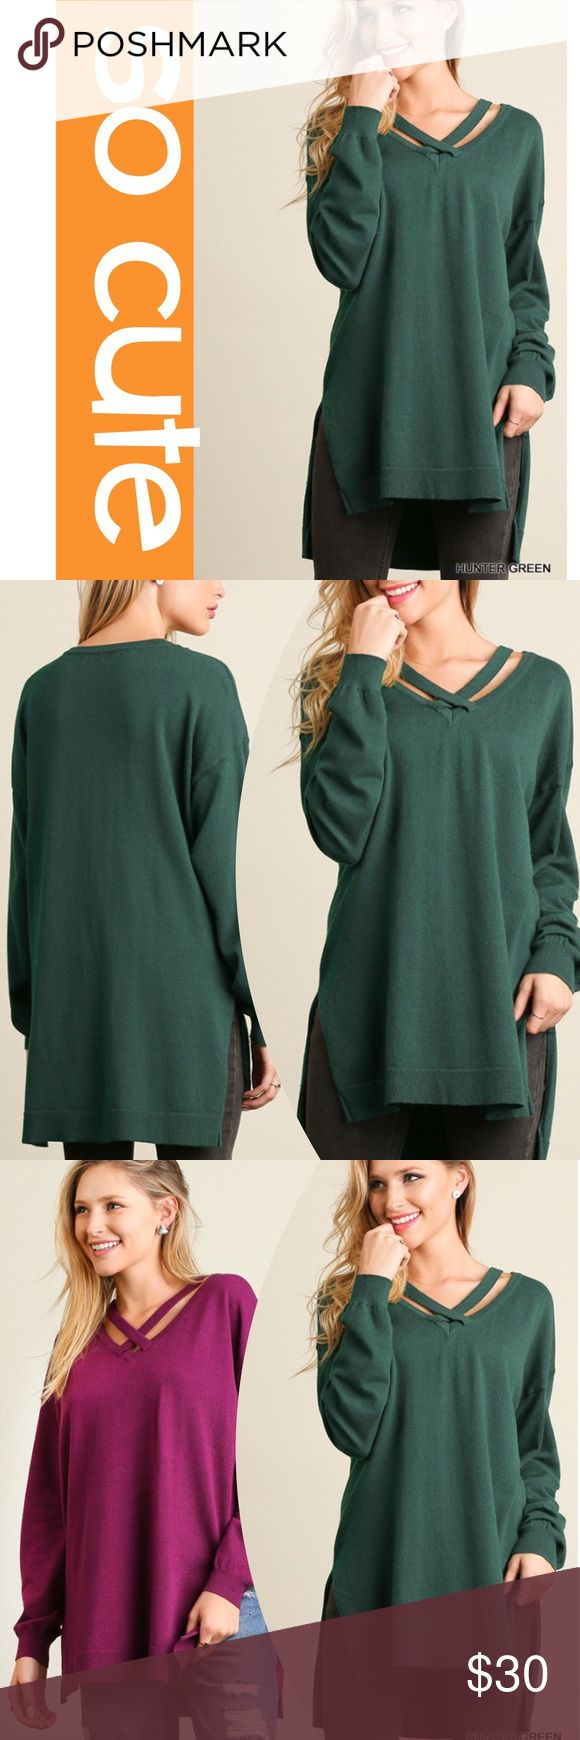 CROSS TOP LIGHTWEIGHT SWEATER Trendy, cross top with a cute high low hem. Very flattering. Rayon/polyester/spandex. Measurements upon request. RASPBERRY ALSO AVAILABLE IN A SEPARATE LISTING. tla2 Sweaters Crew & Scoop Necks